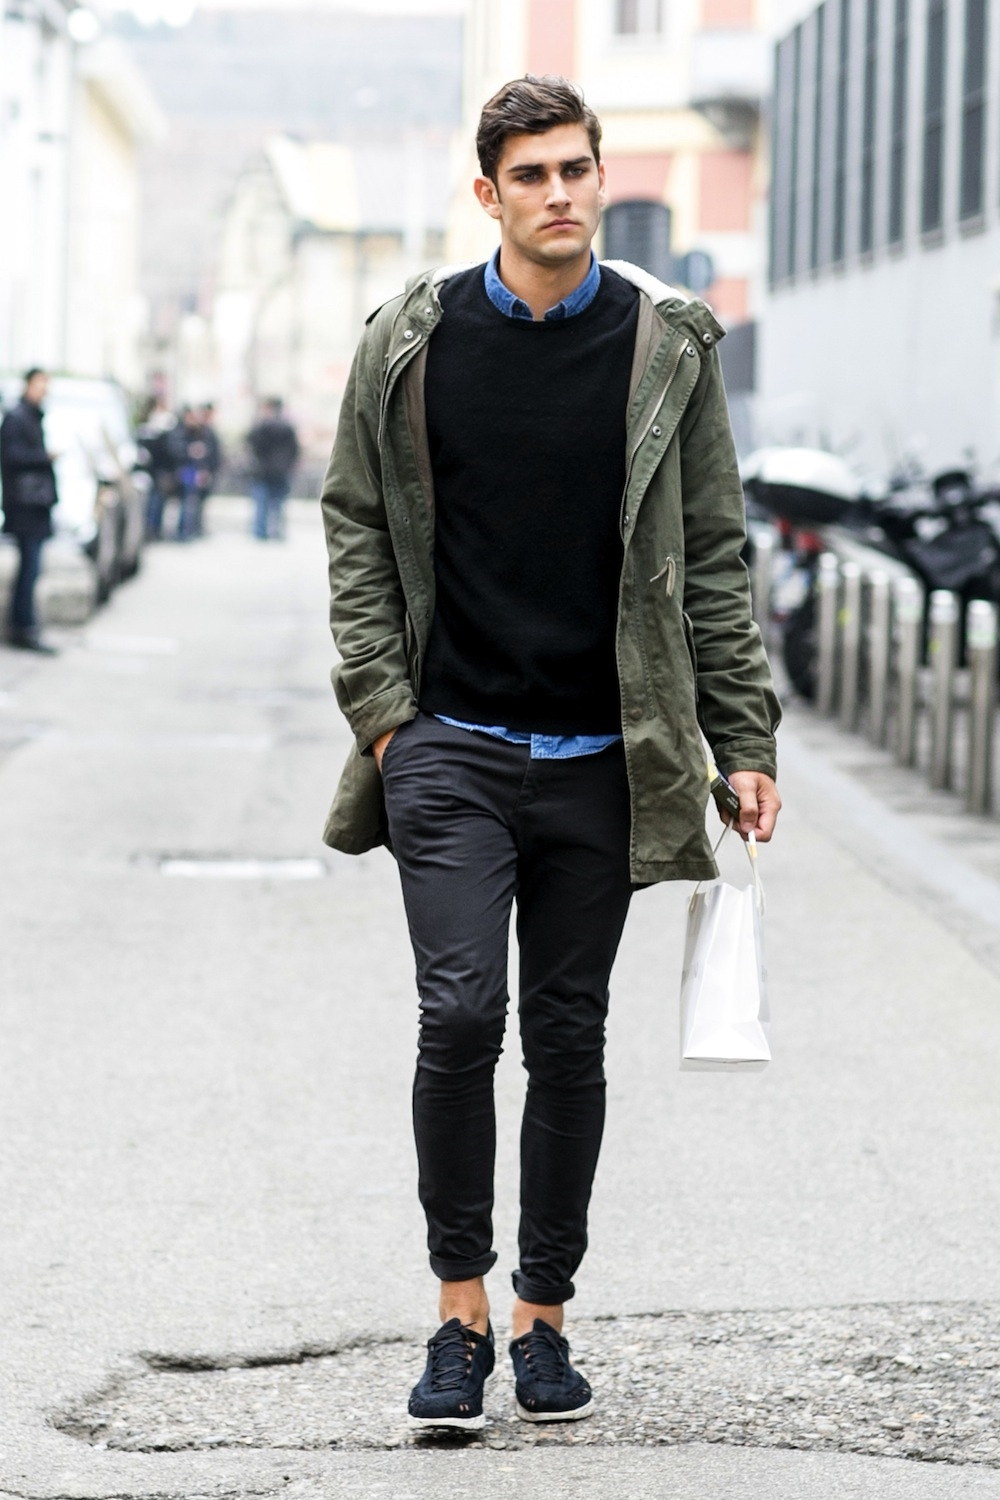 Then it is high time to get inspiration from this article about men street style fashion. Street Style is very popular these days. Street Style is very popular these days. That is why we bring this collection of 17 popular street style fashion ideas for men.